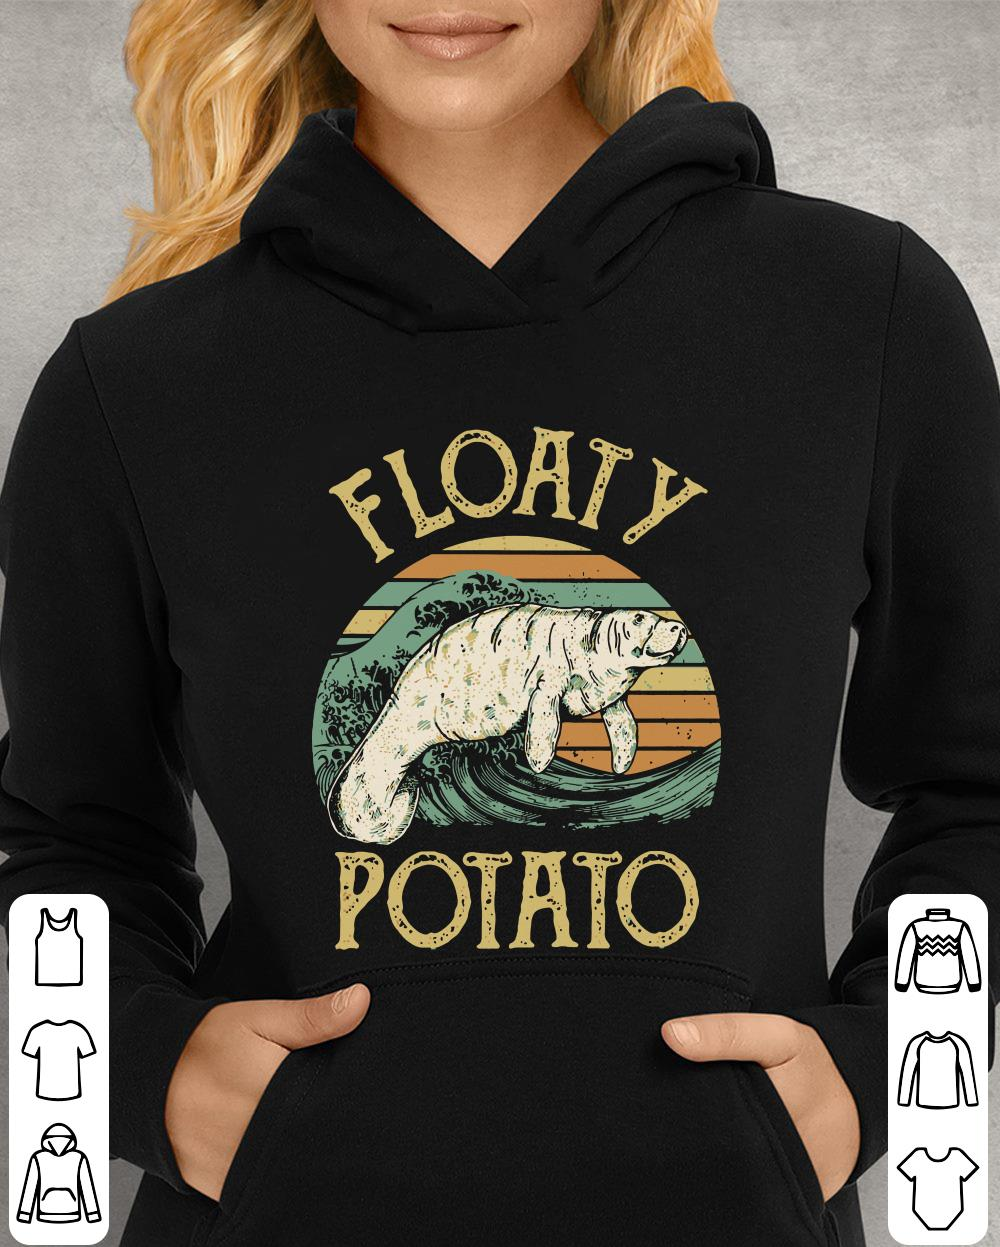 https://unicornshirts.net/images/2018/12/The-Sunset-Floaty-Potato-shirt_4-1.jpg